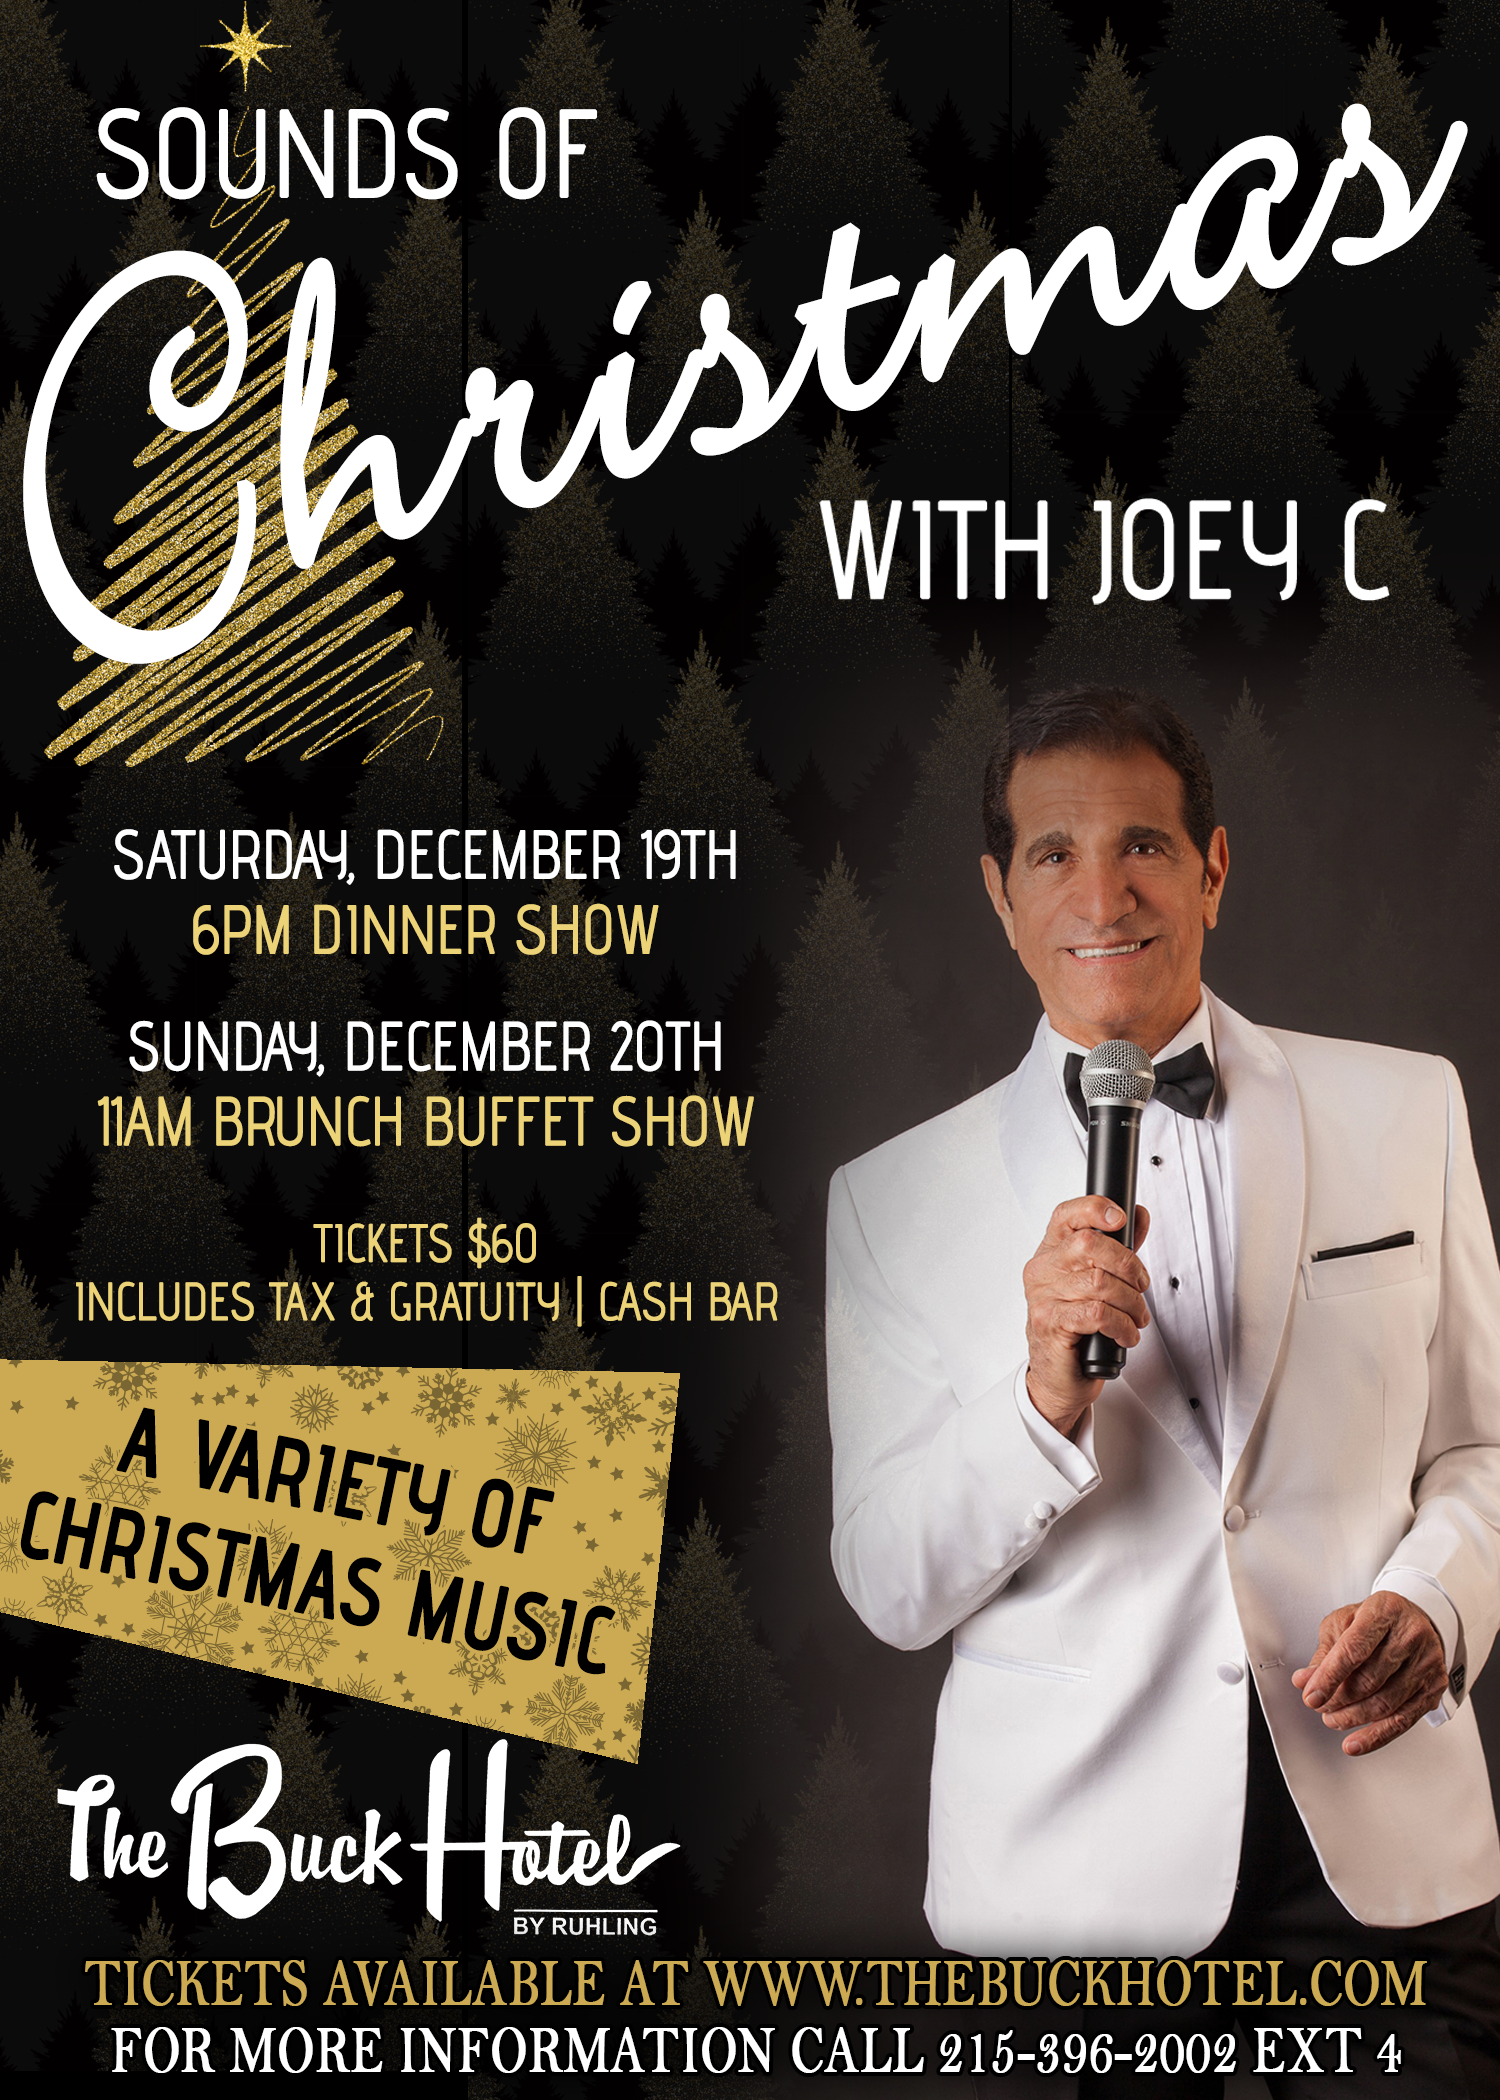 sounds of christmas with joey c. saturday december 19th 6om dinner show. sunday december 20th 11am brunch buffet show. tickets $60. includes tax and gratuity. cash bar. a variety of christmas music.